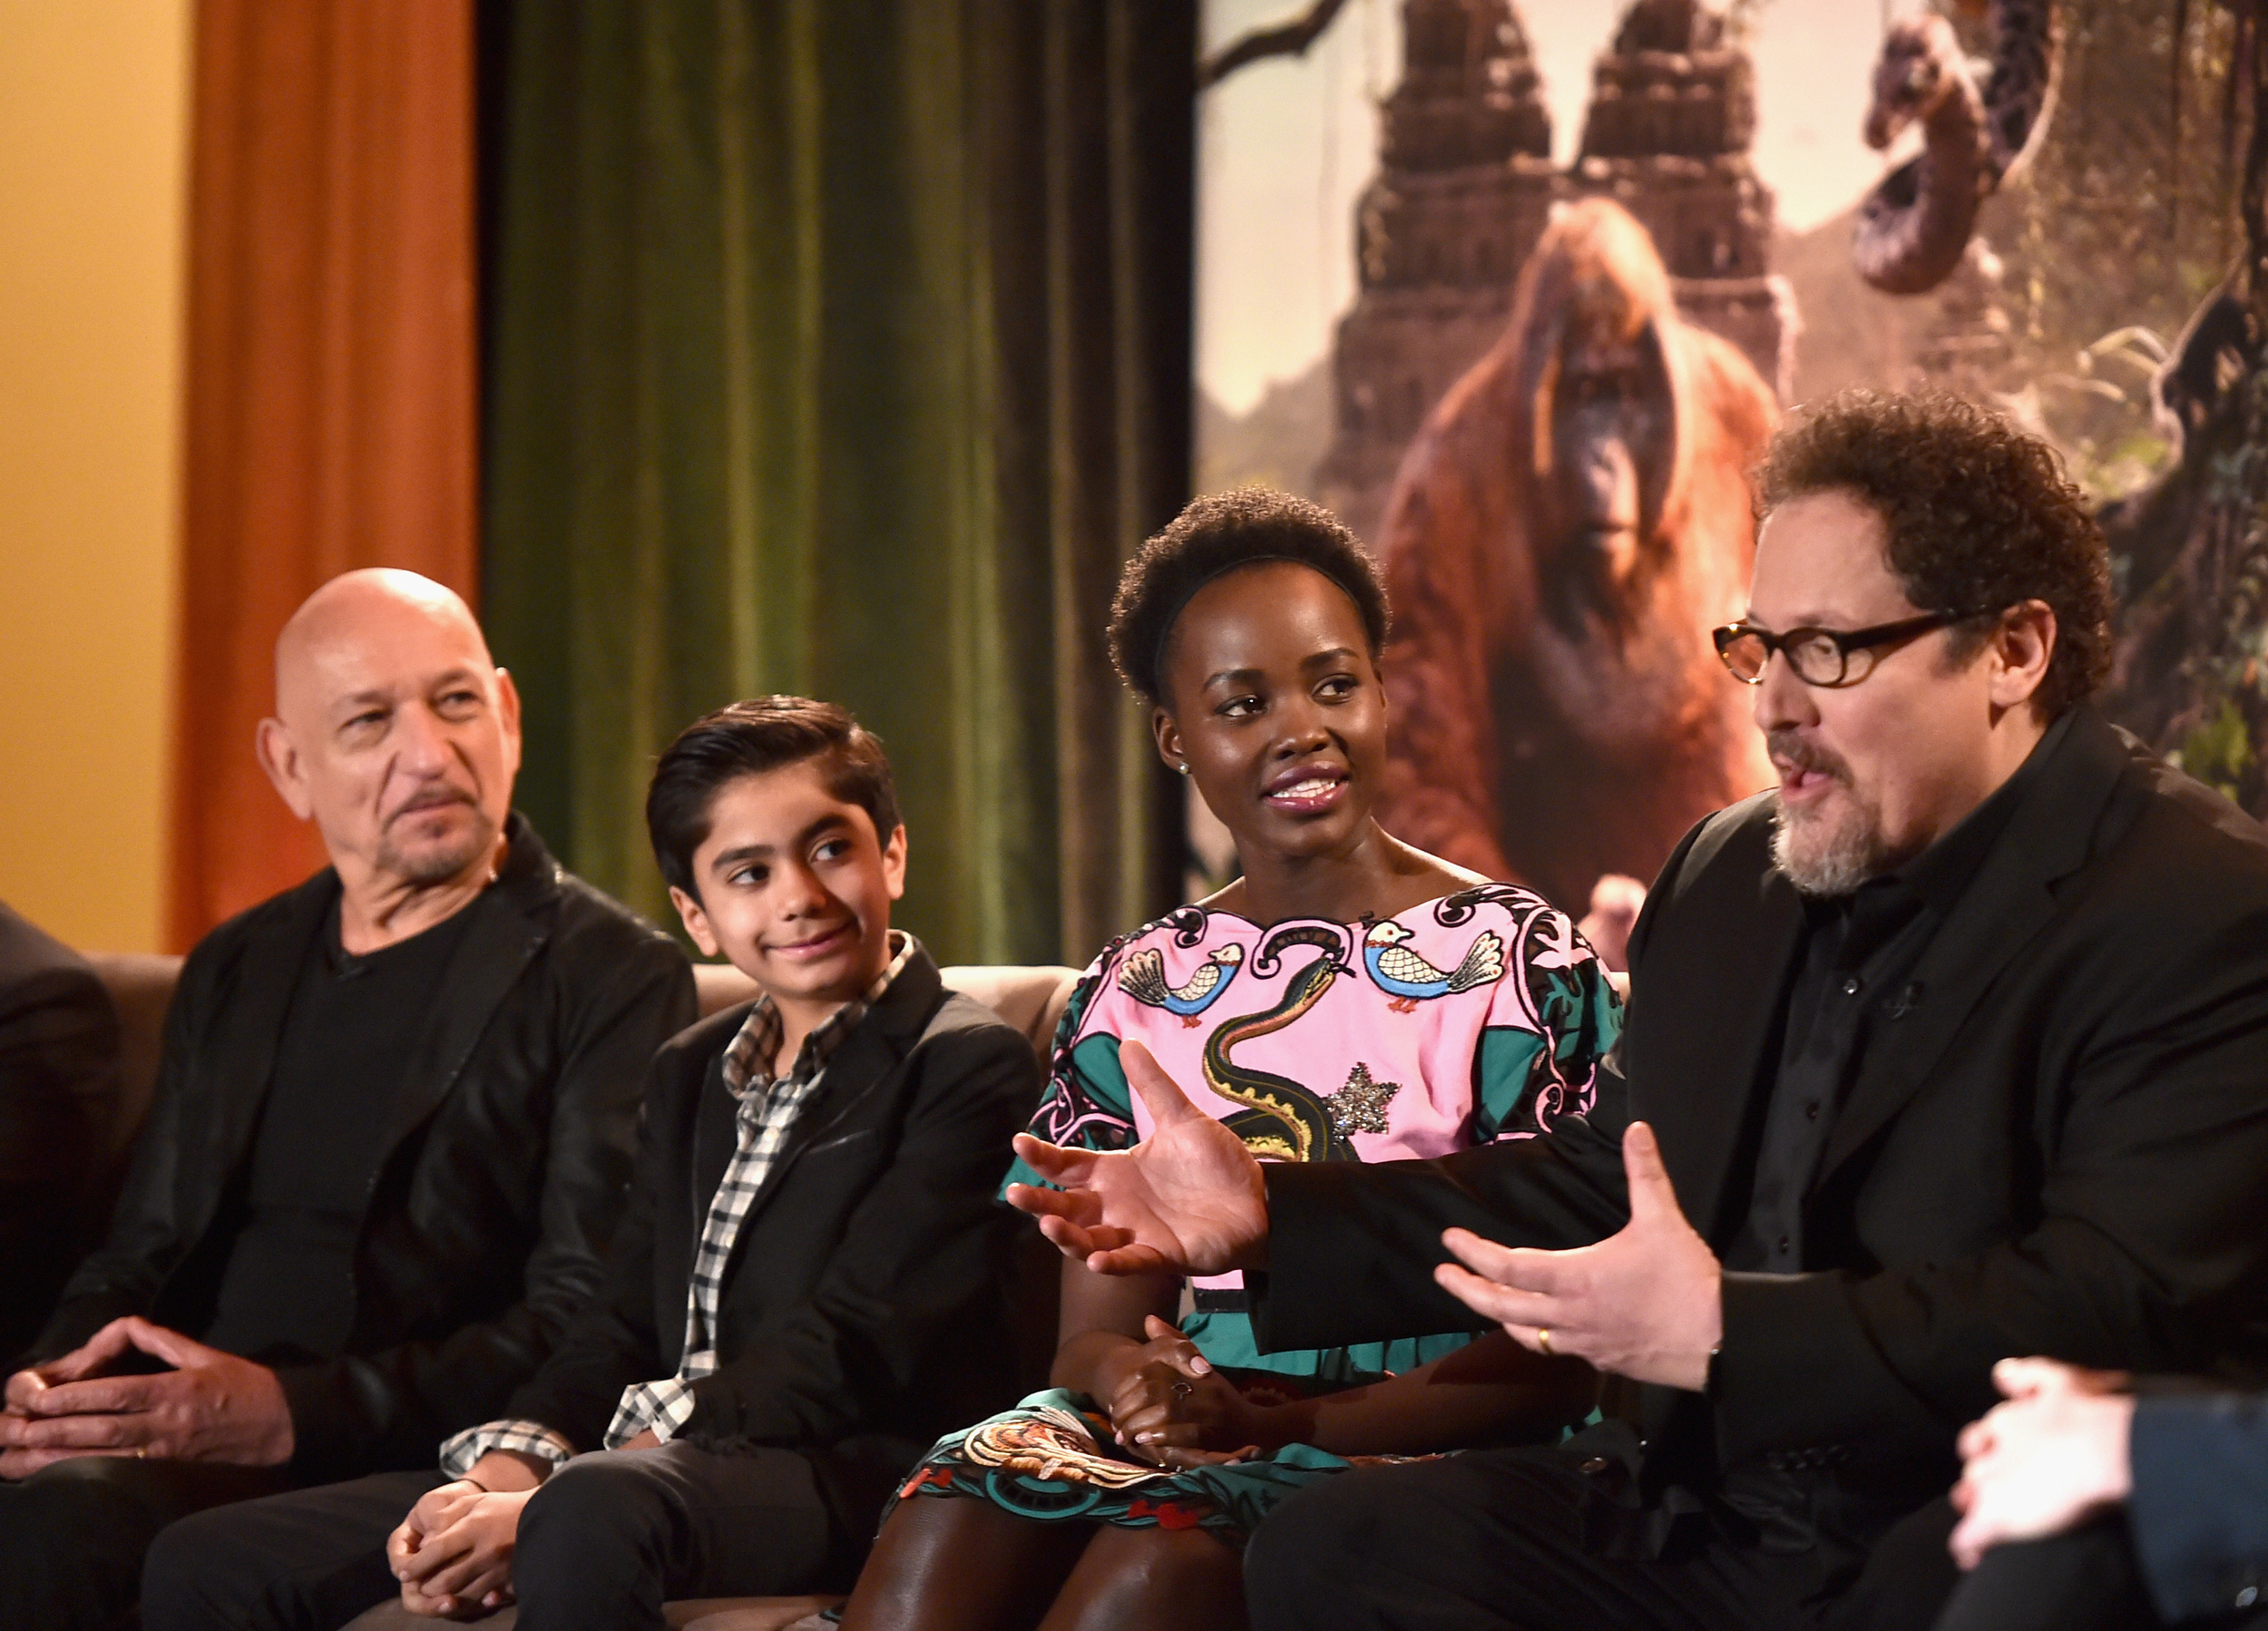 Director Jon Favreau explains his vision. Photo courtesy of Disney.